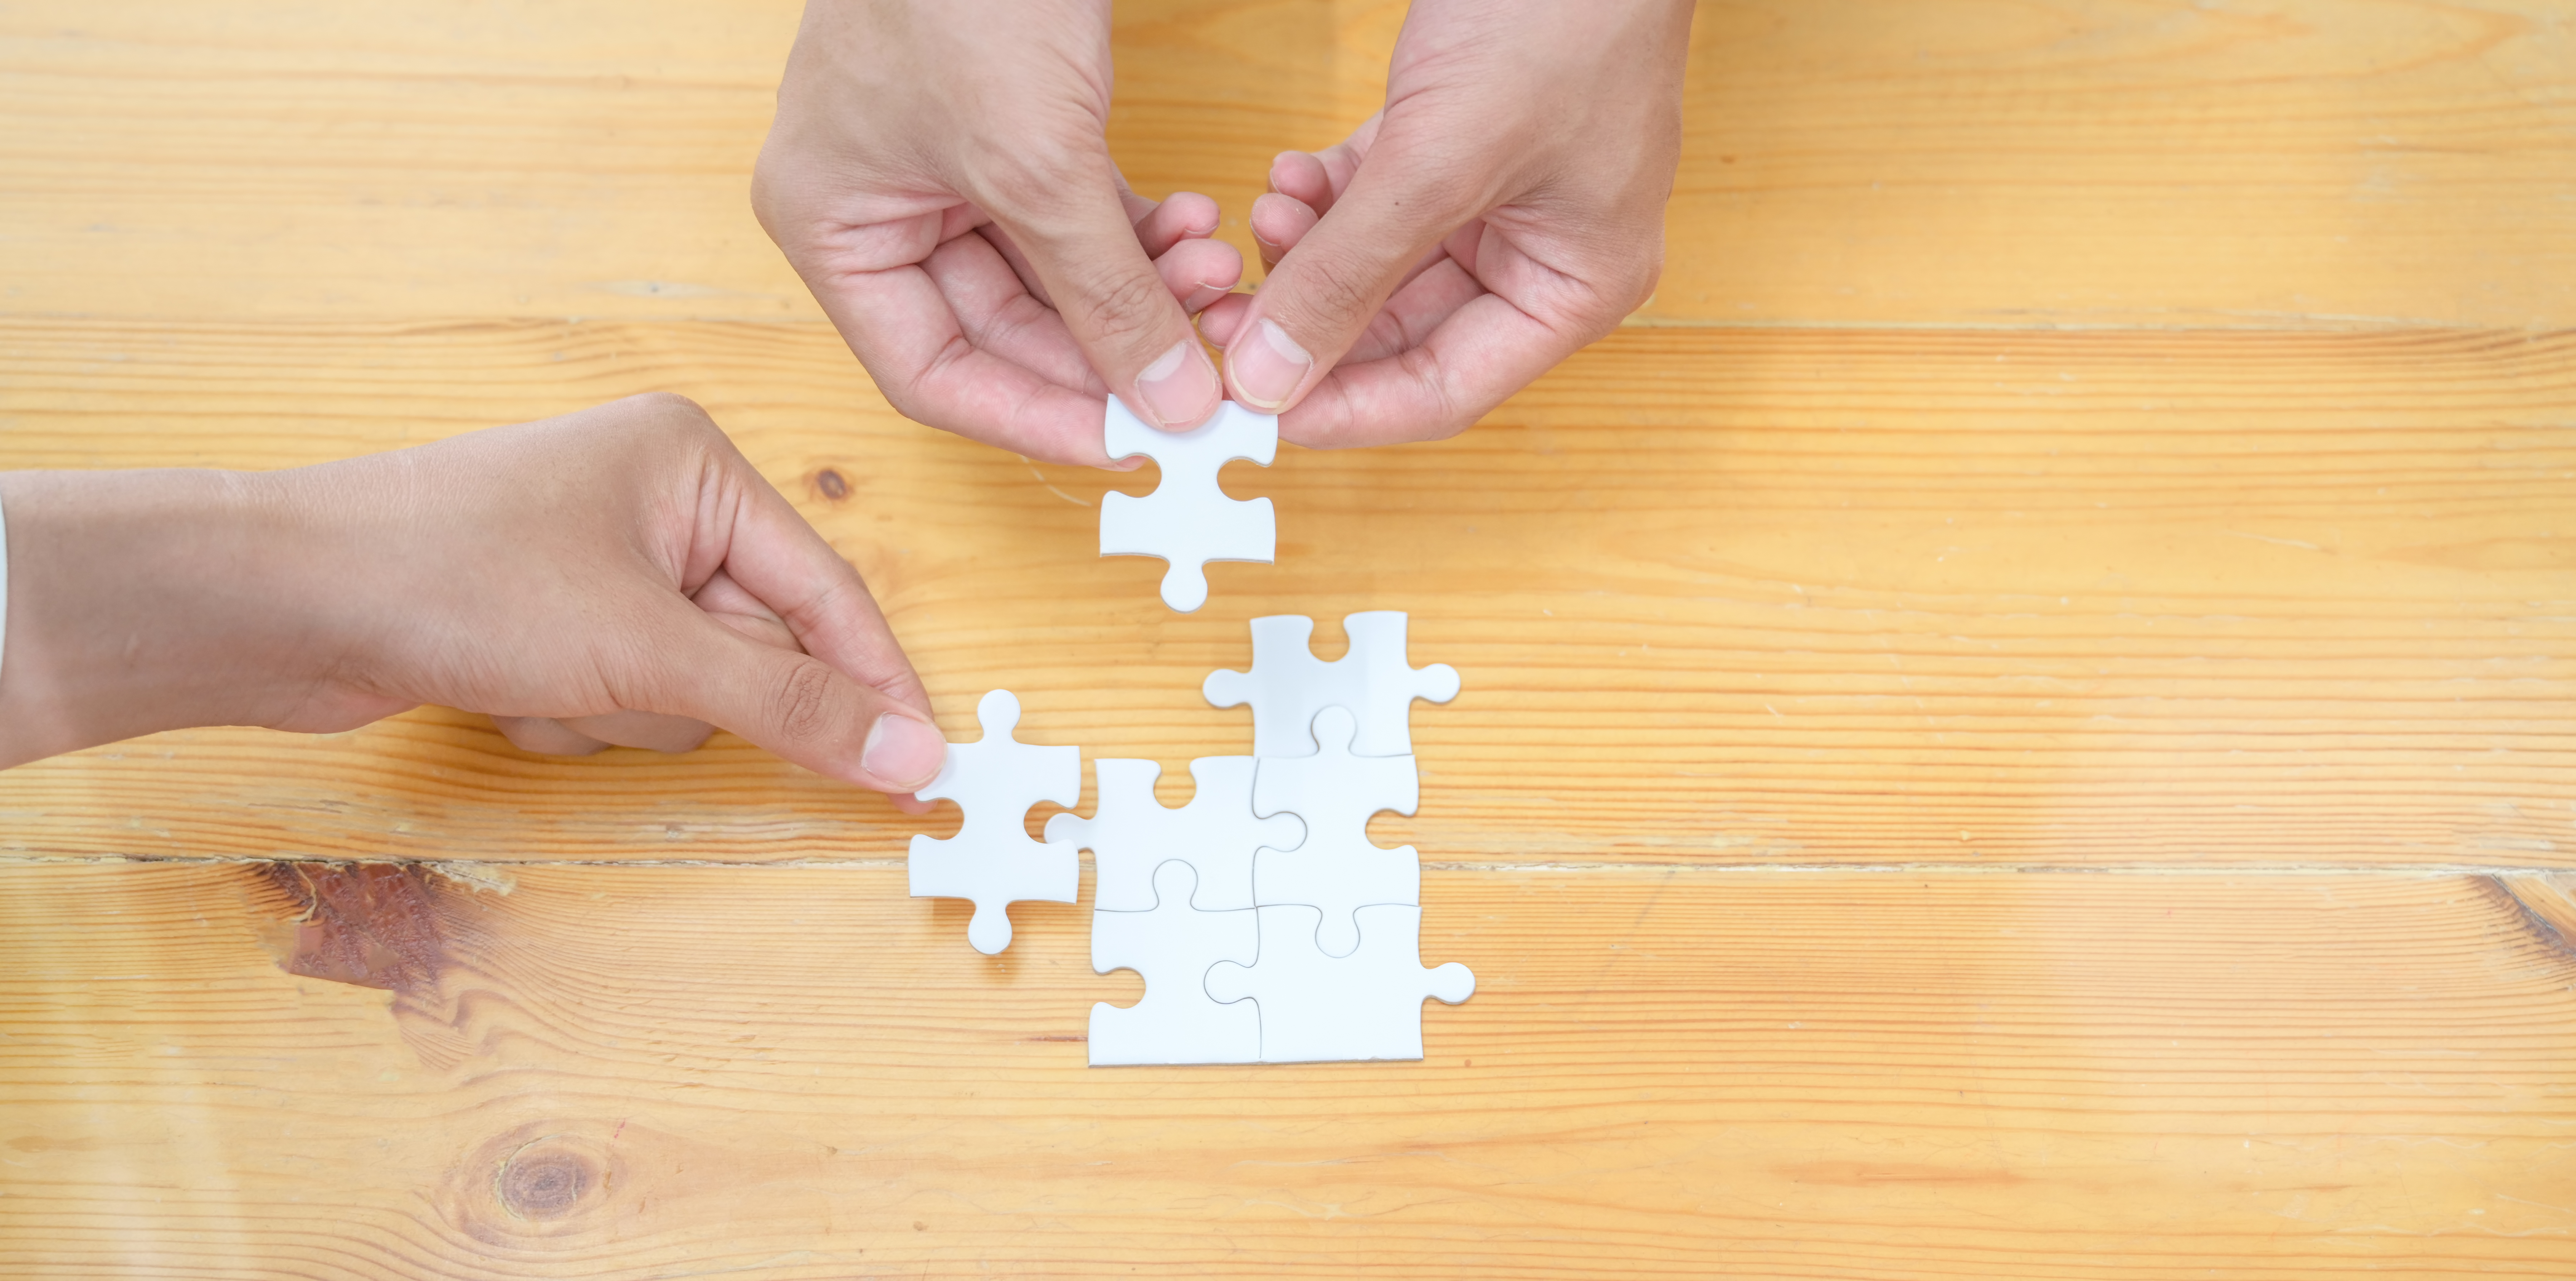 Top view of hands of diverse people assembling jigsaw puzzle